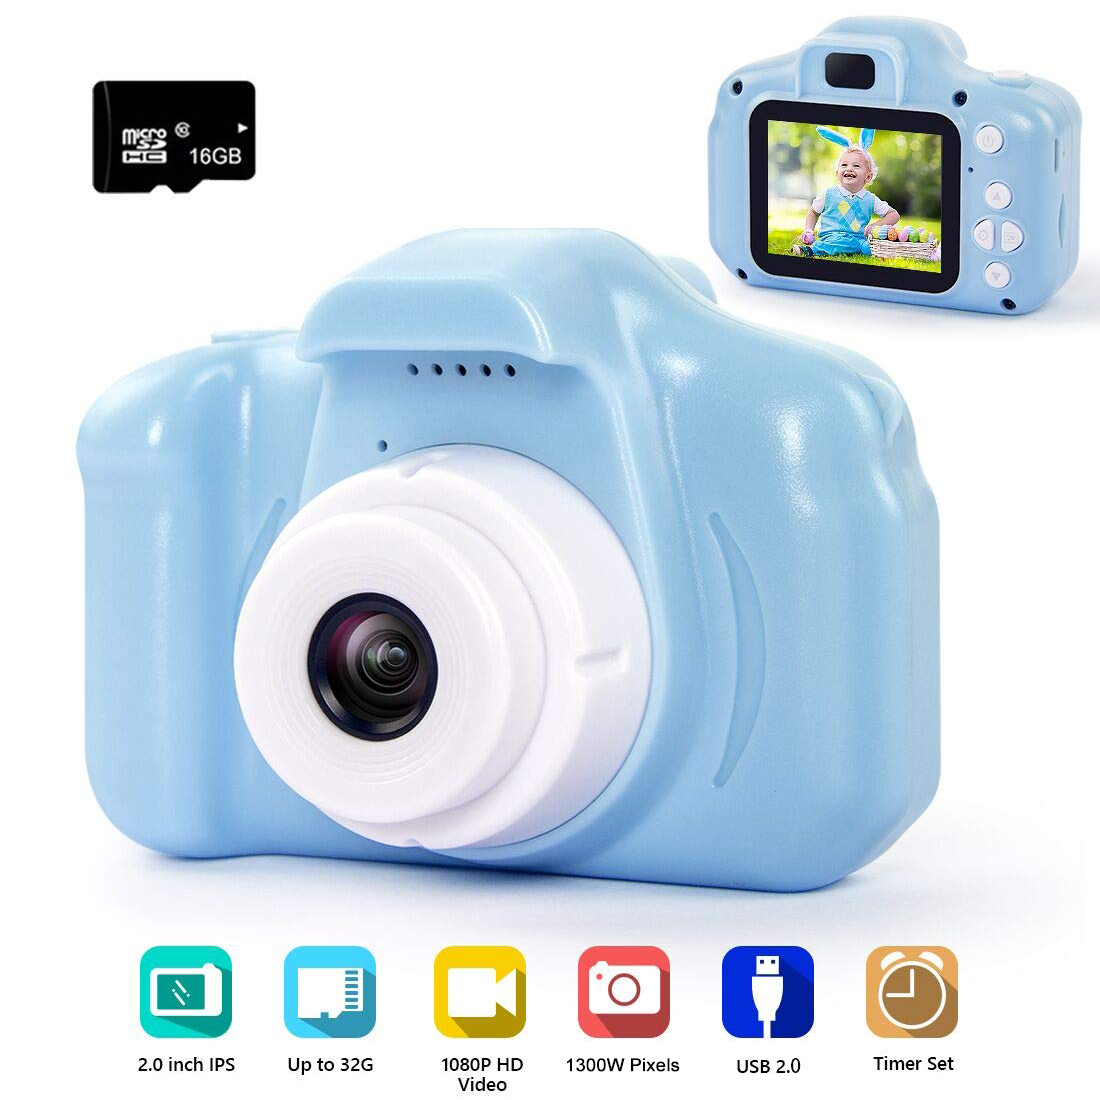 Digital Camera 20MP 1080P FHD Video Recorder 2.0 Inches IPS Screen Children Cartoon Toy Camcorder with 24 Funny Filters for Kids Gifts for 3-10 Year Old Boys Girls with 32GB SD Card Kids Camera